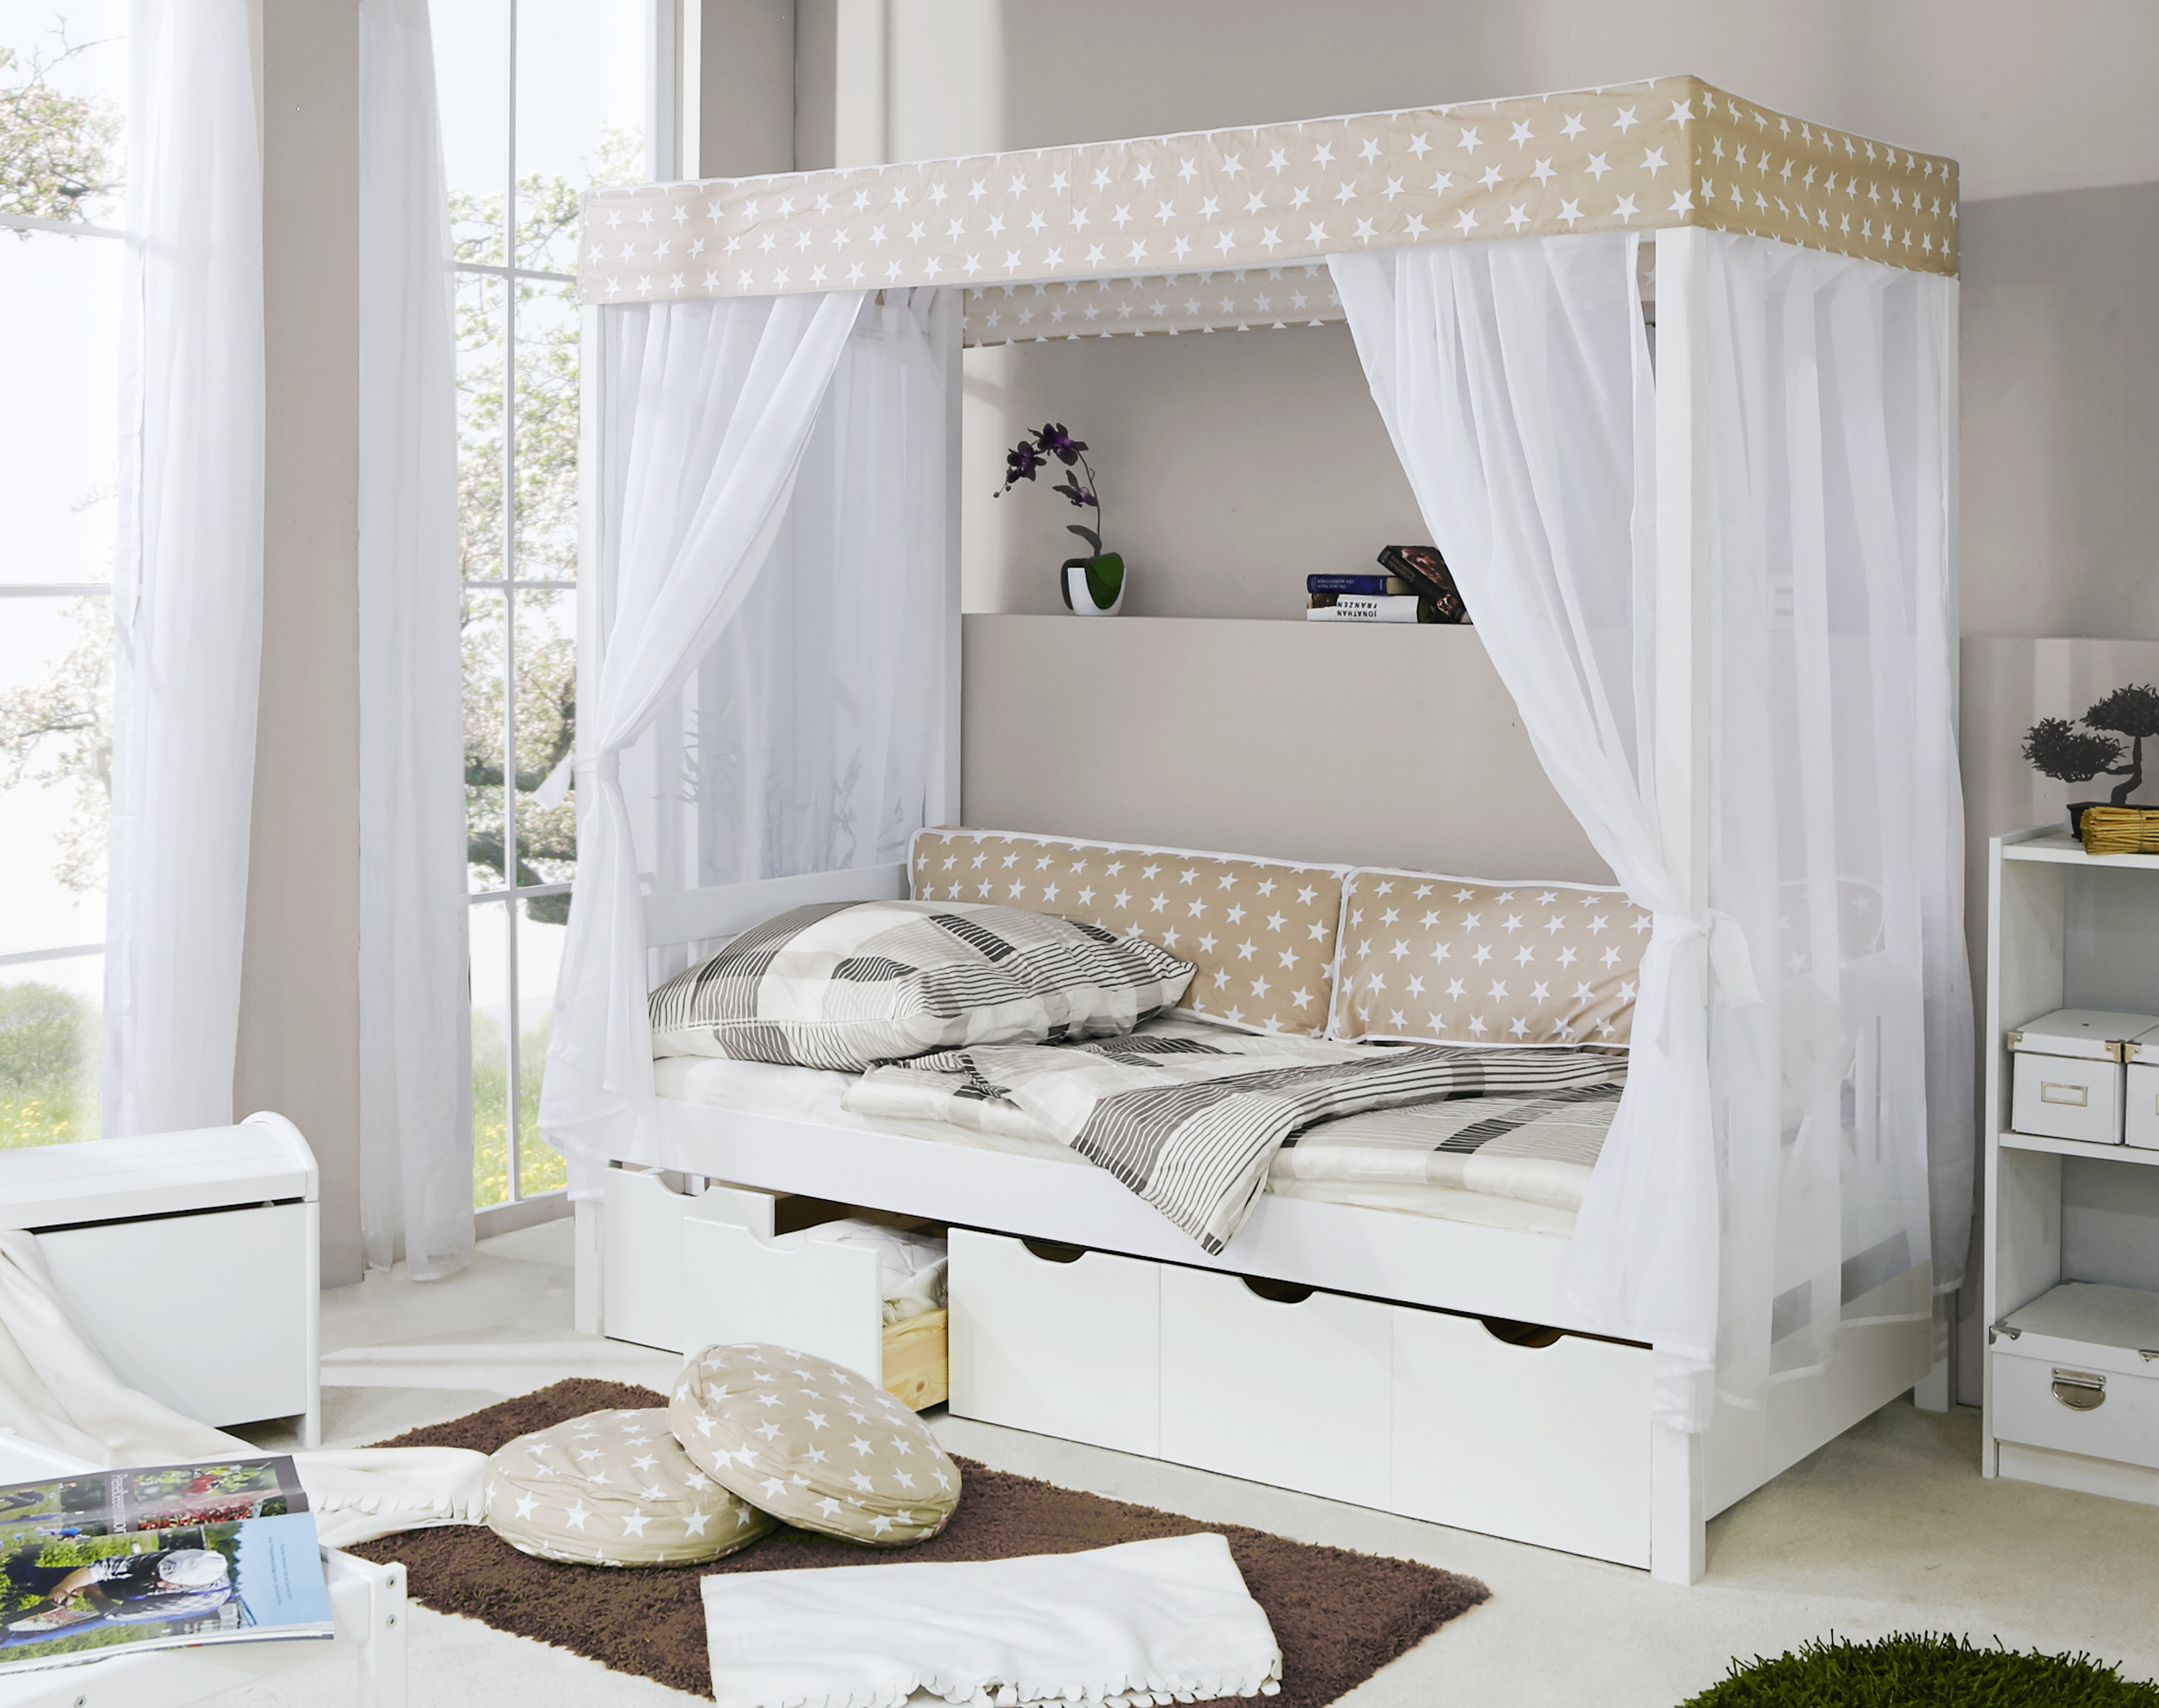 schlafzimmer himmel schlafzimmer kinderzimmer zusammen dachschr ge feng shui tapeten f r modern. Black Bedroom Furniture Sets. Home Design Ideas